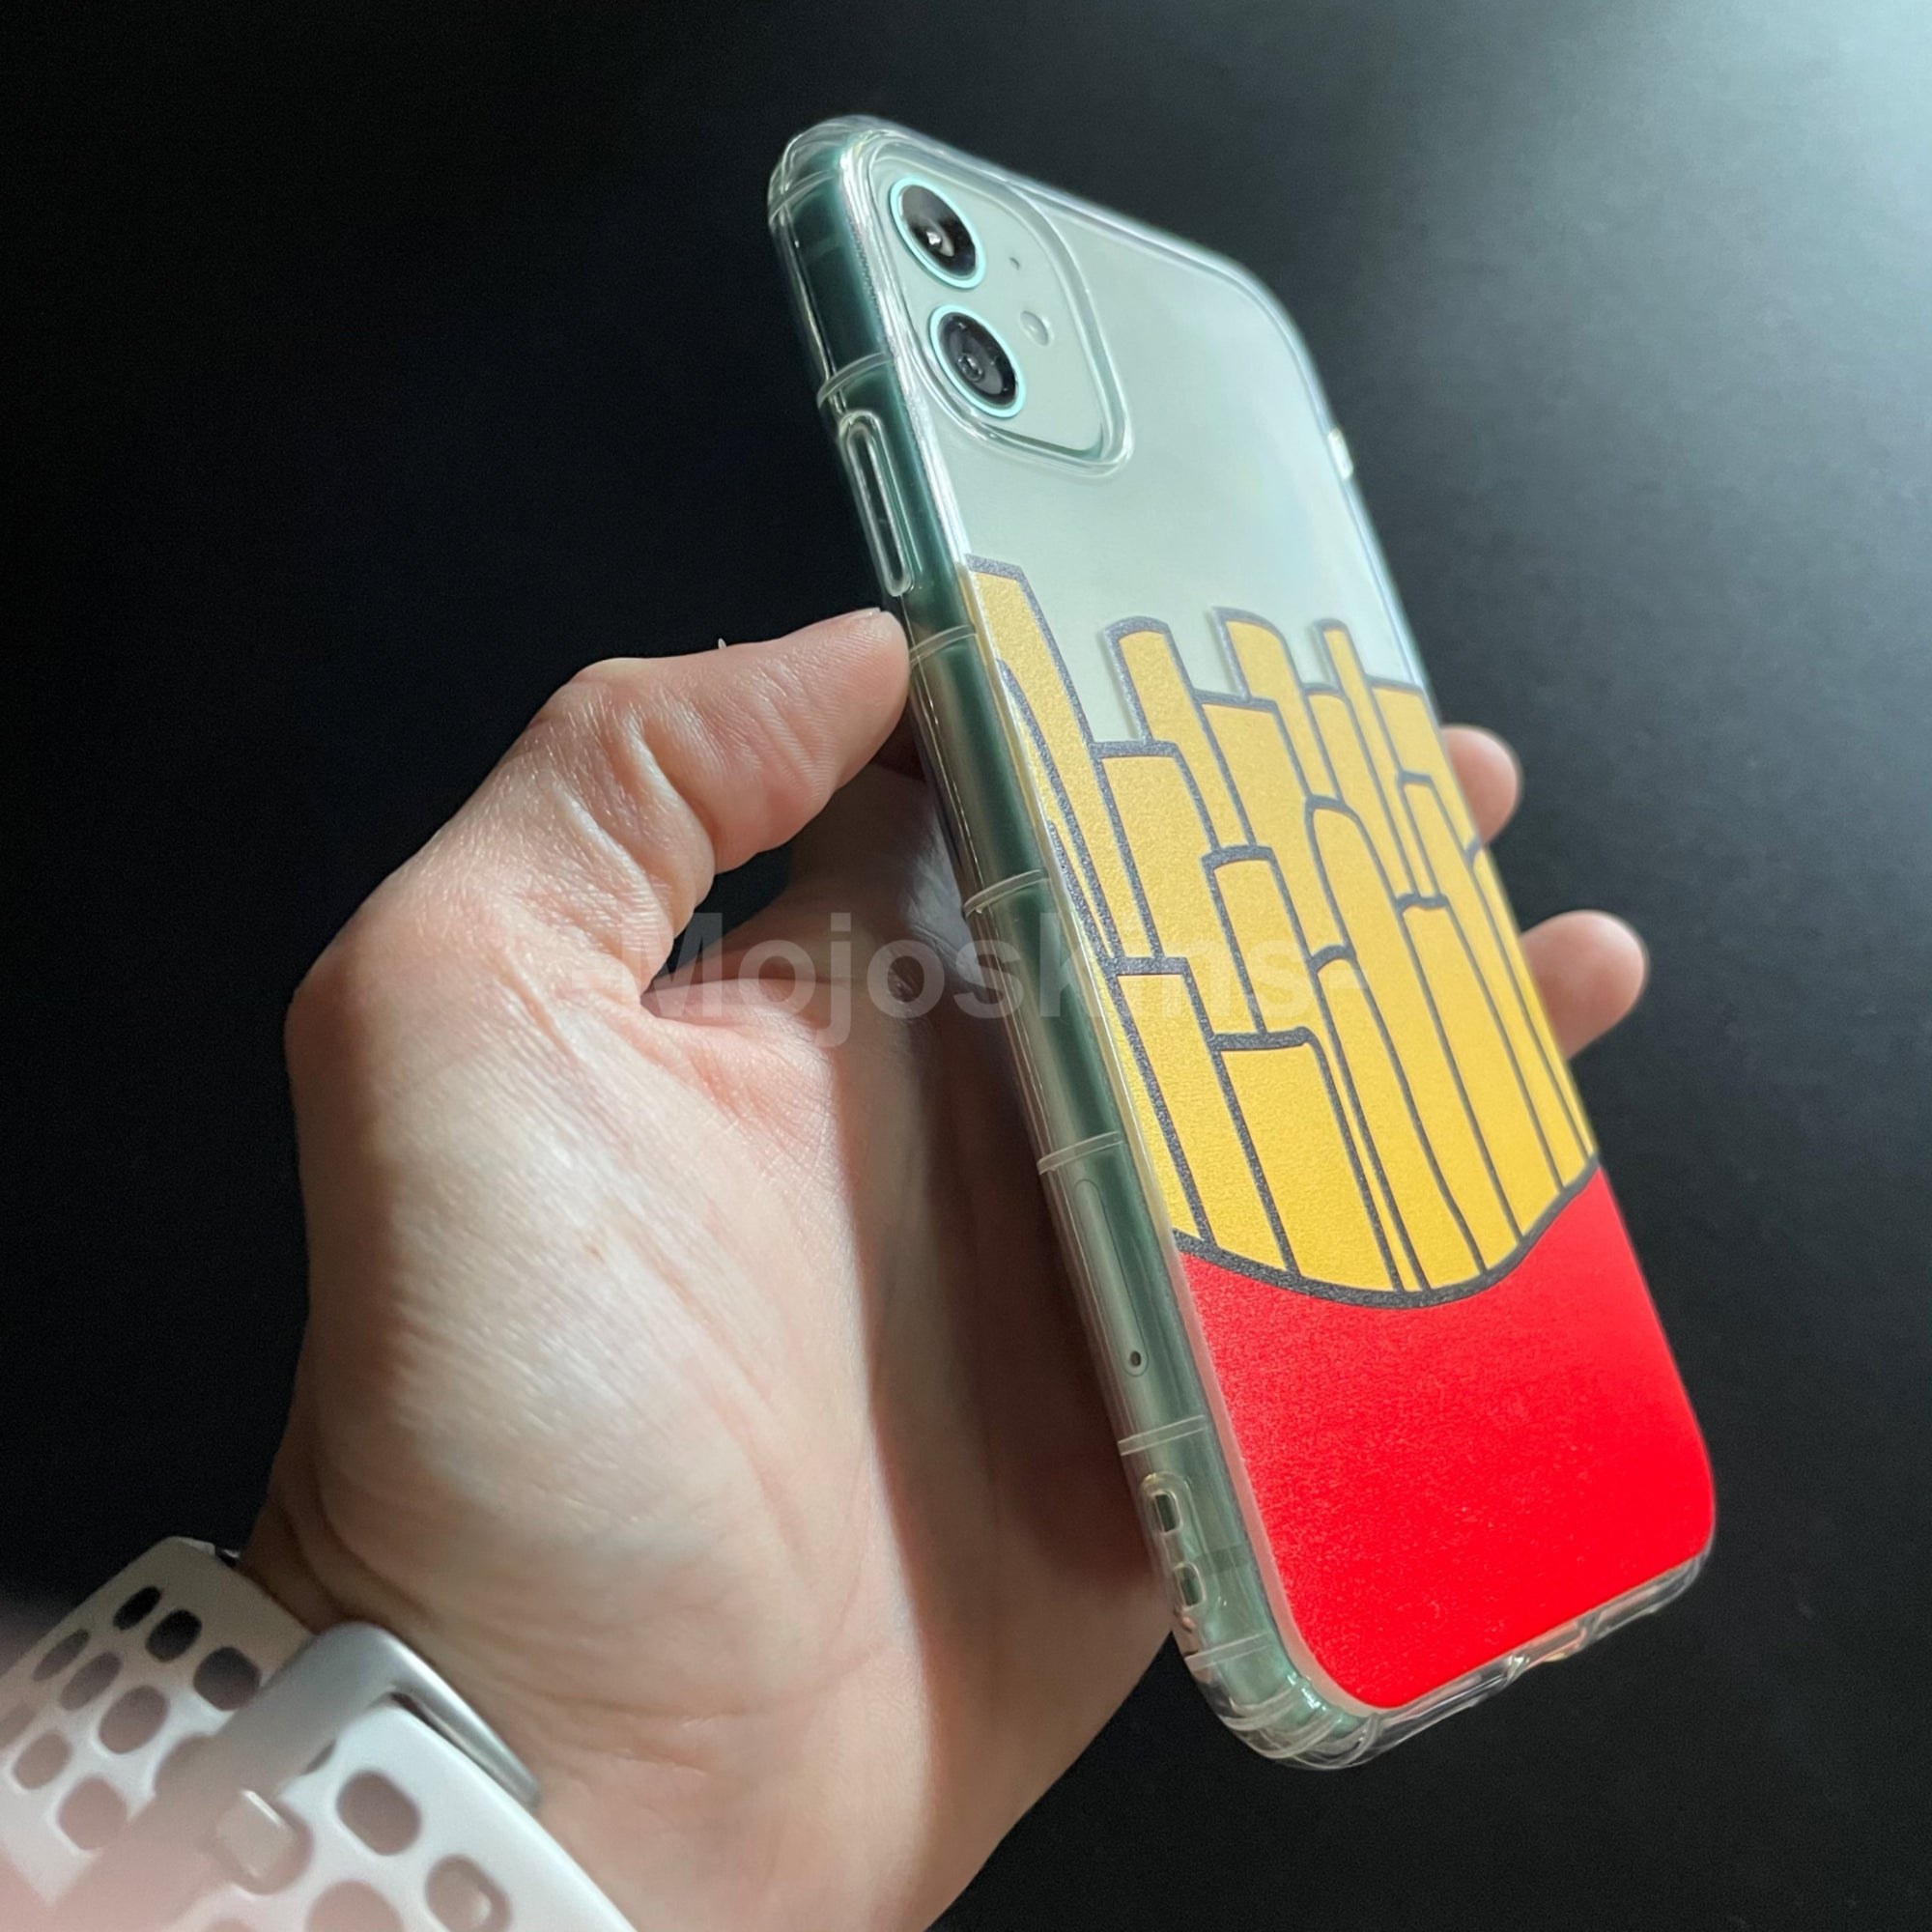 Fries McD Iphone Casing